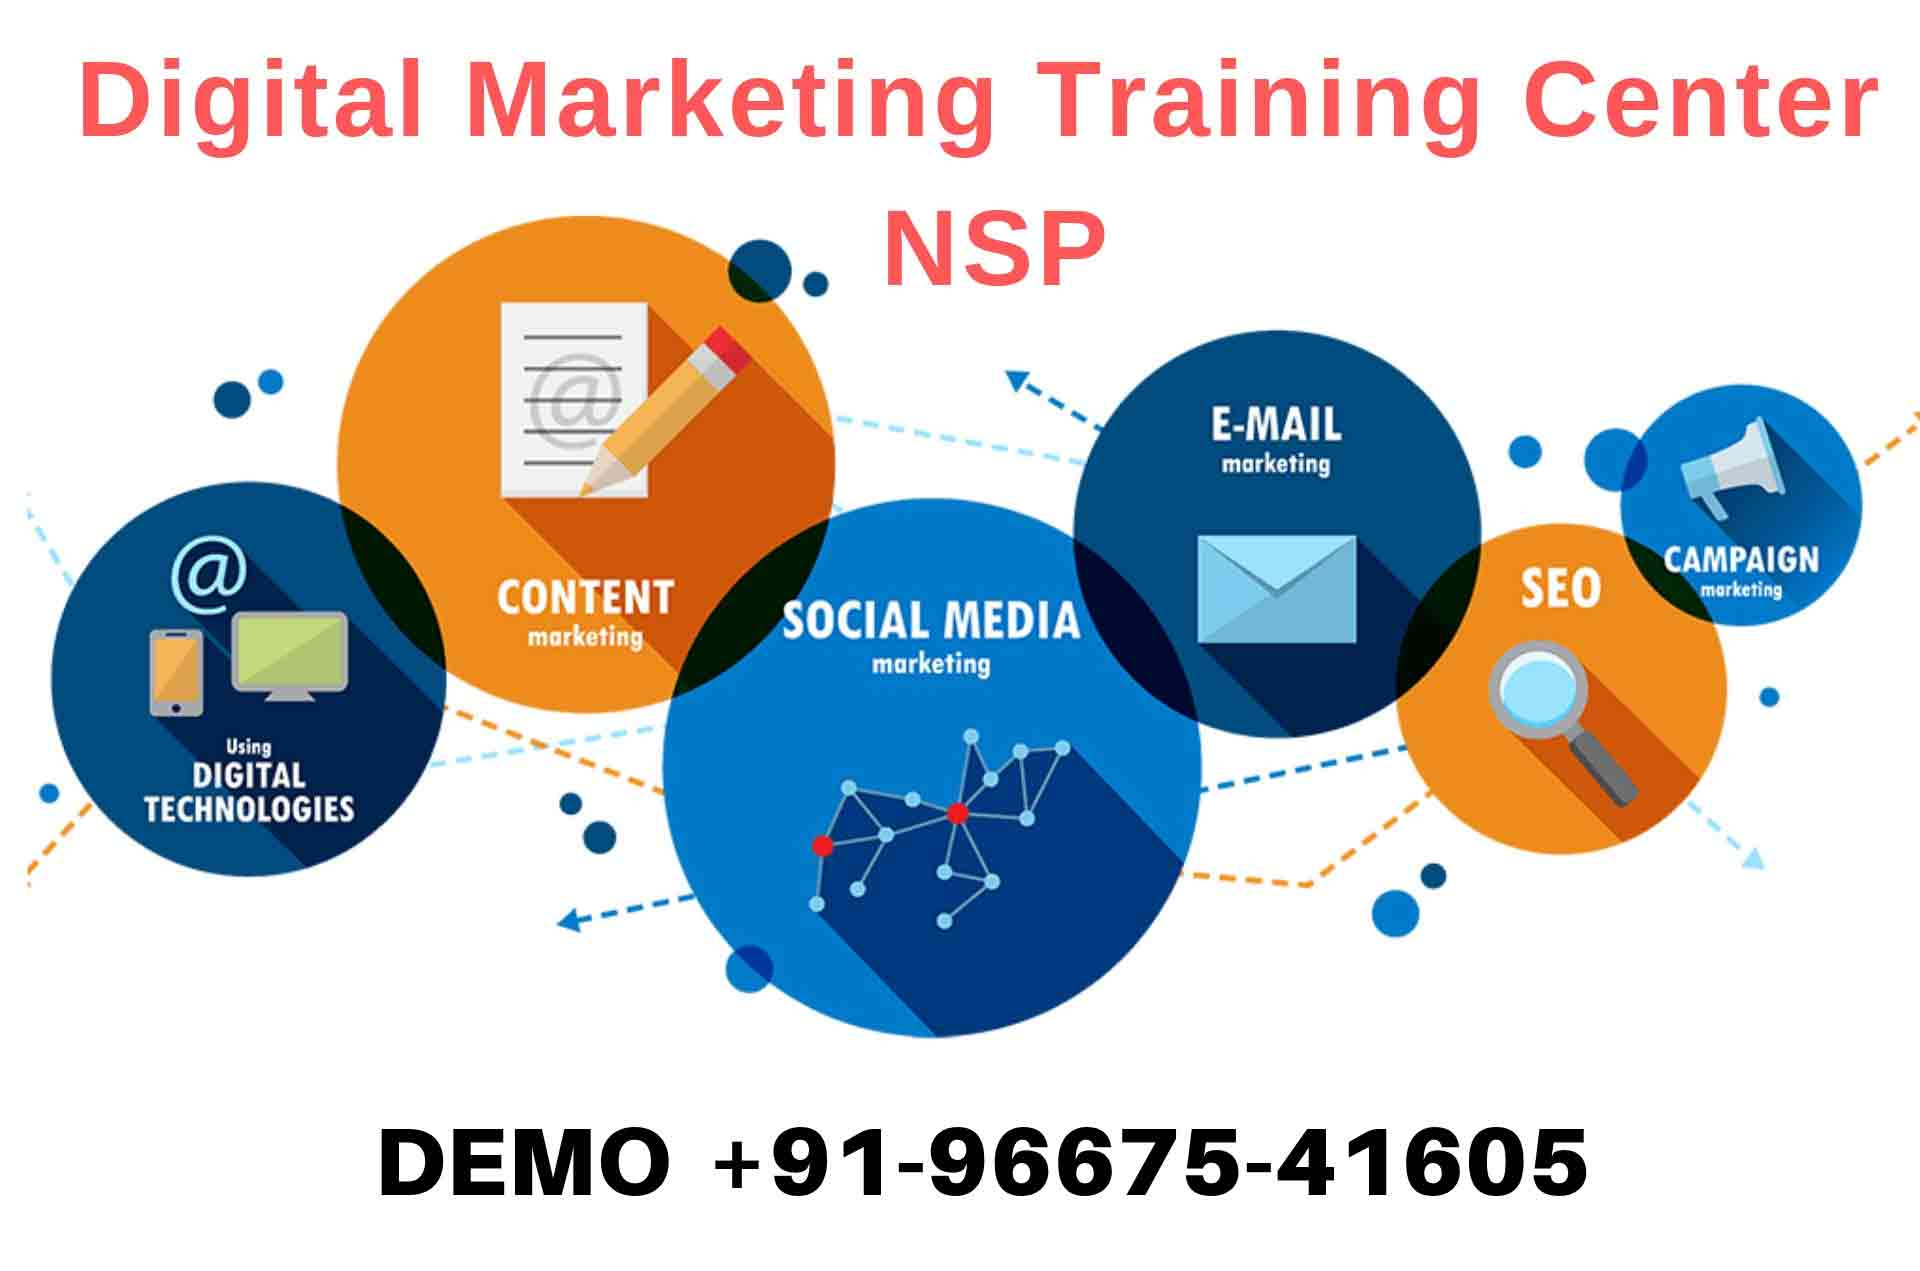 Digital Marketing Training Center NSP